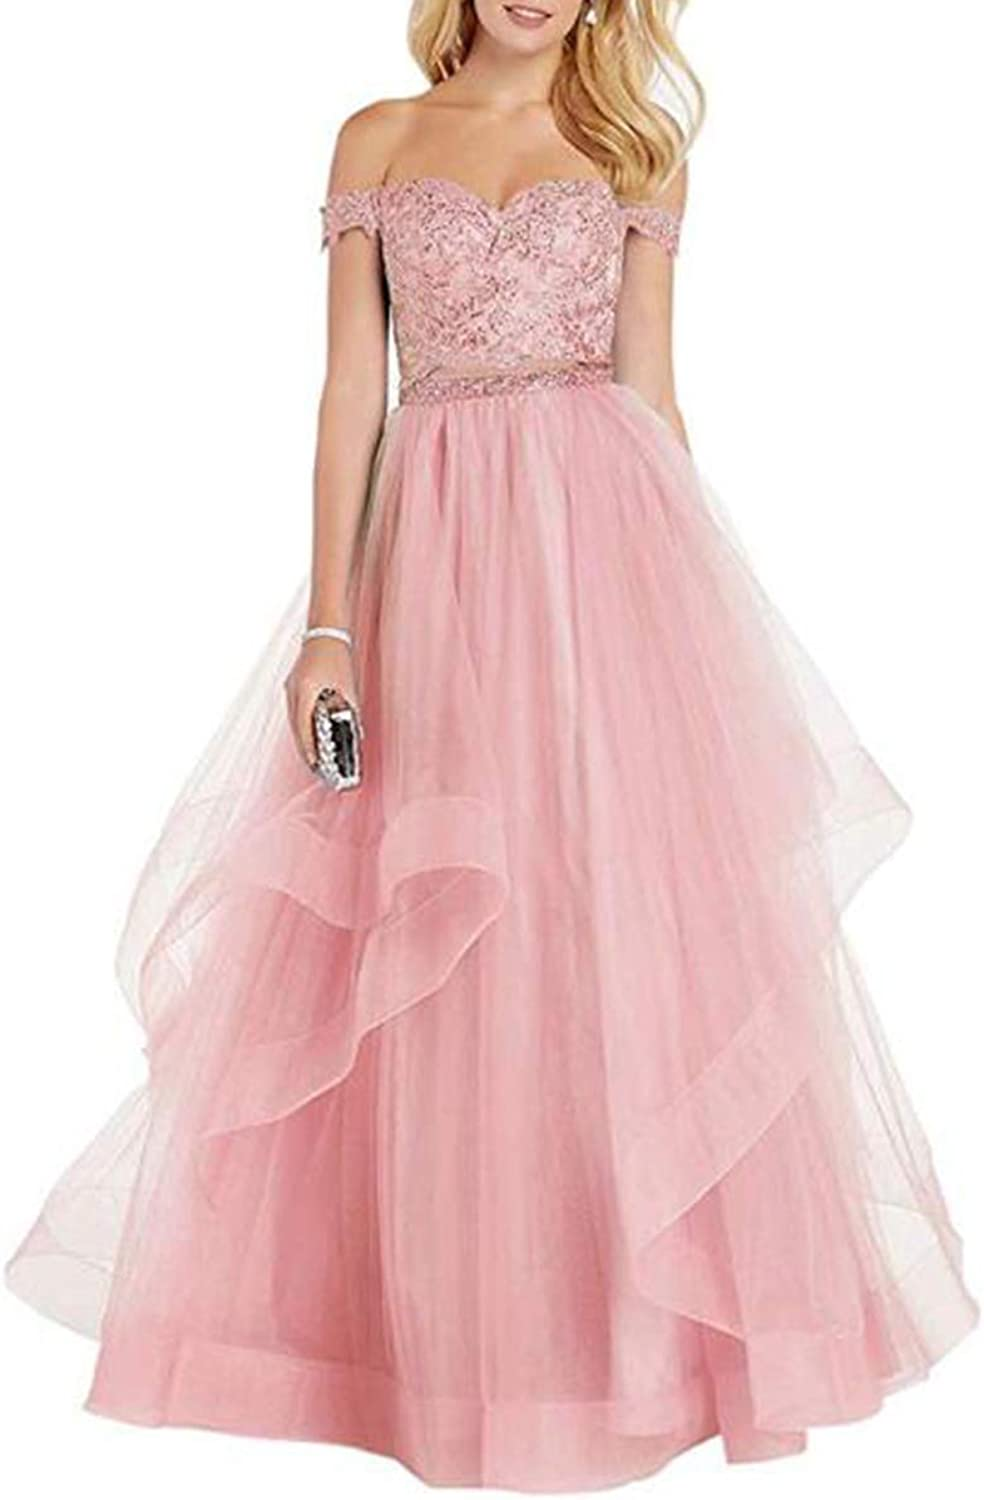 Alilith.Z Off The Shoulder 2 Piece Prom Dresses Beaded Appliques Tulle Formal Evening Dress Party Gowns for Women 2019 Long